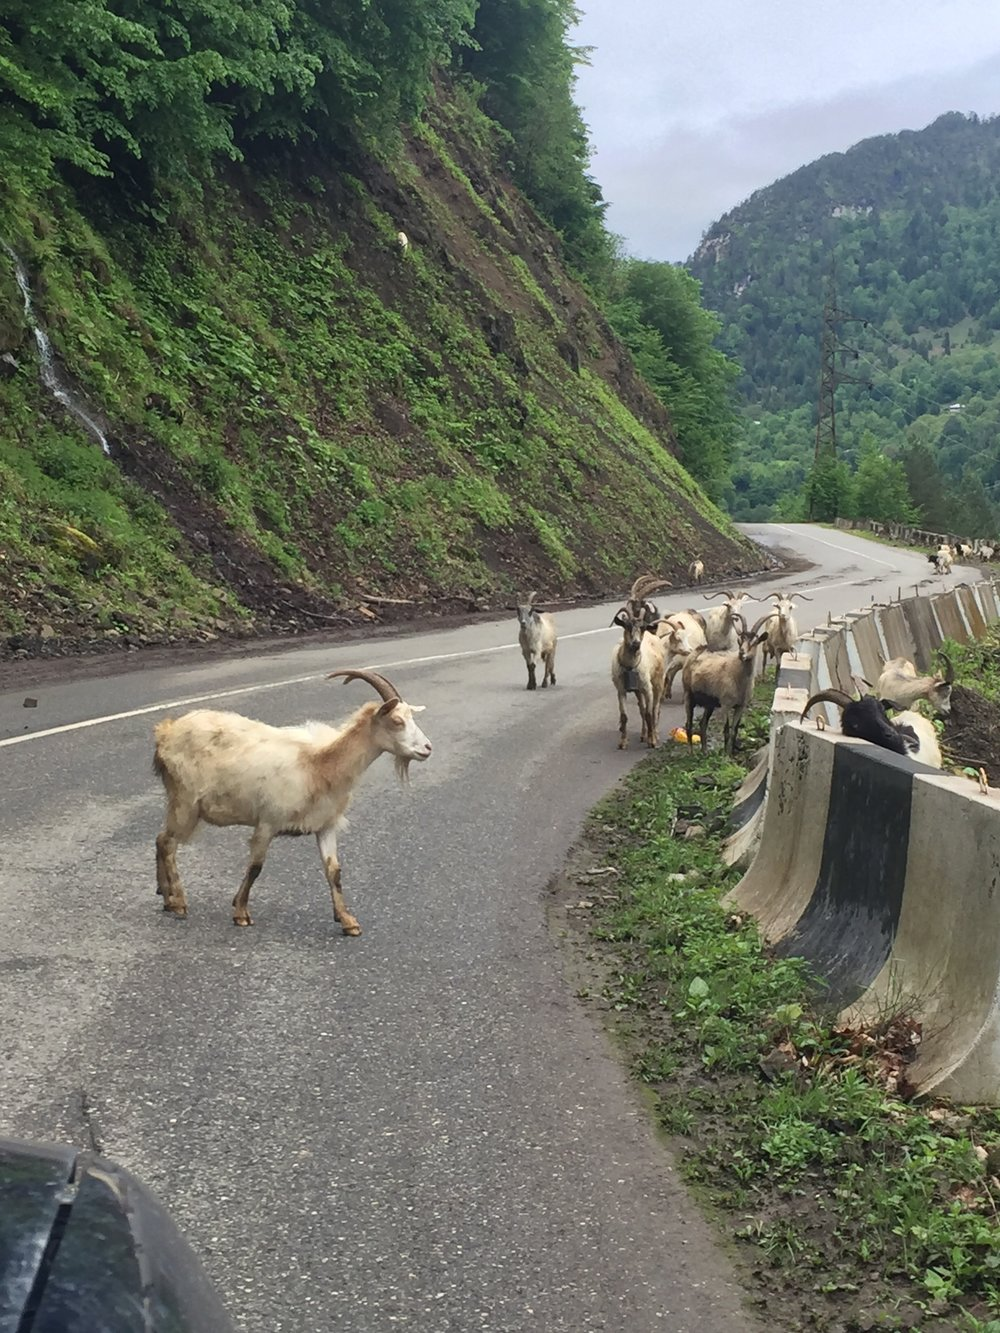 Goats in the road!